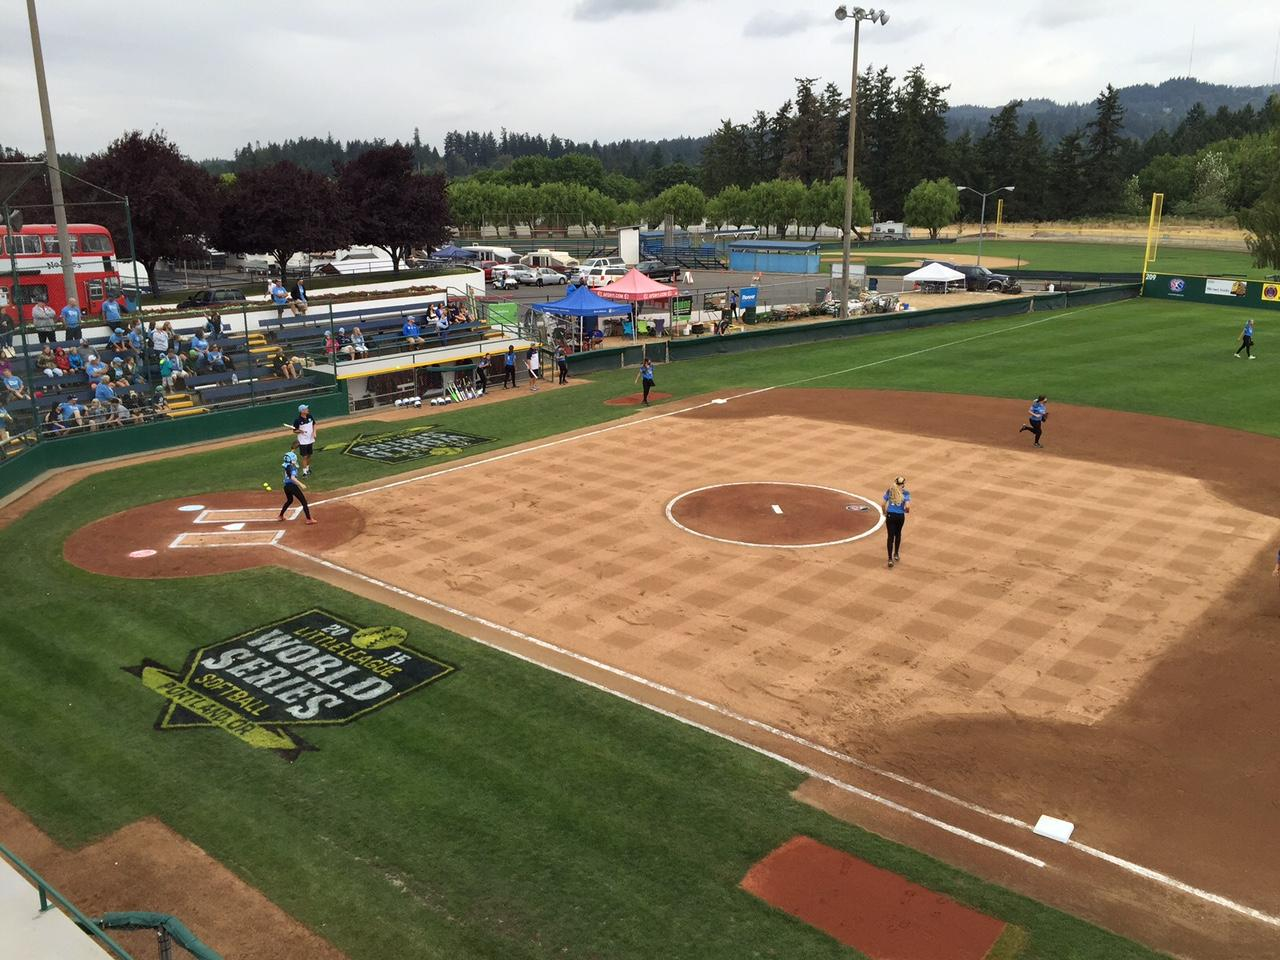 Turface Athletics was a proud sponsor of the 2015 Little League Softball World Series.